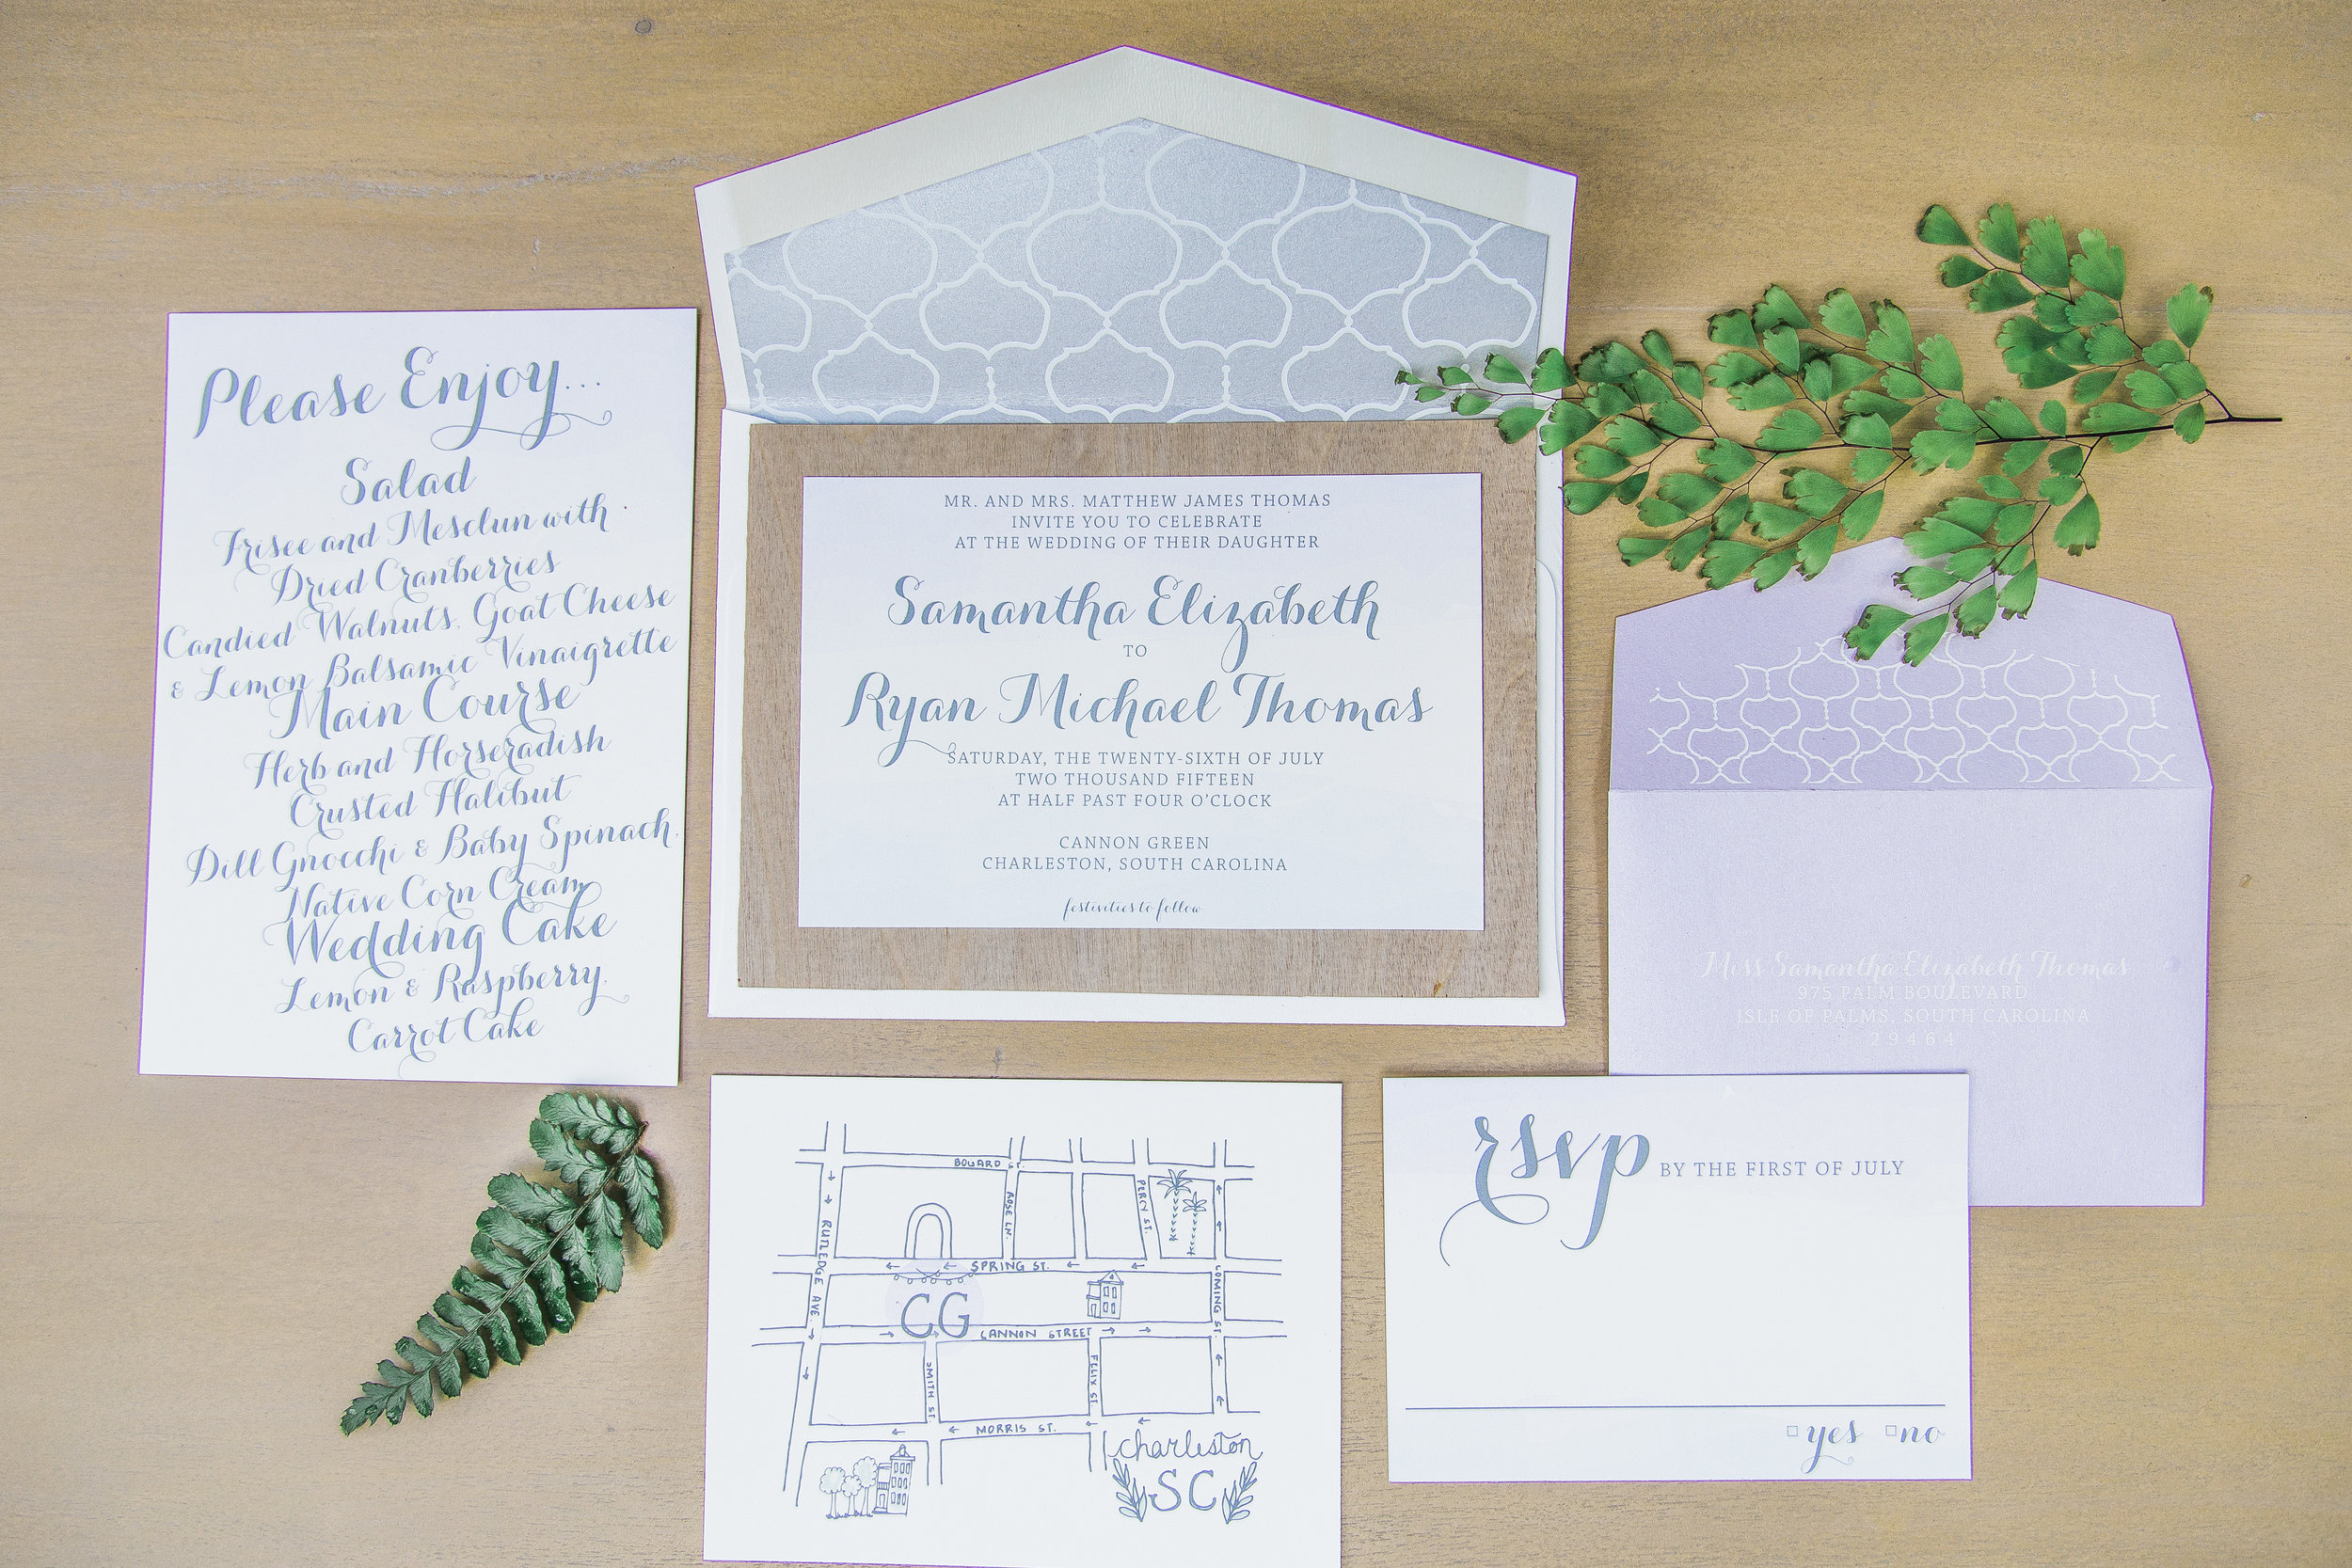 lilac, lavender & periwinkle luxury wedding at cannon green charleston by scarlet plan & design for revolution wedding tours (18).jpg